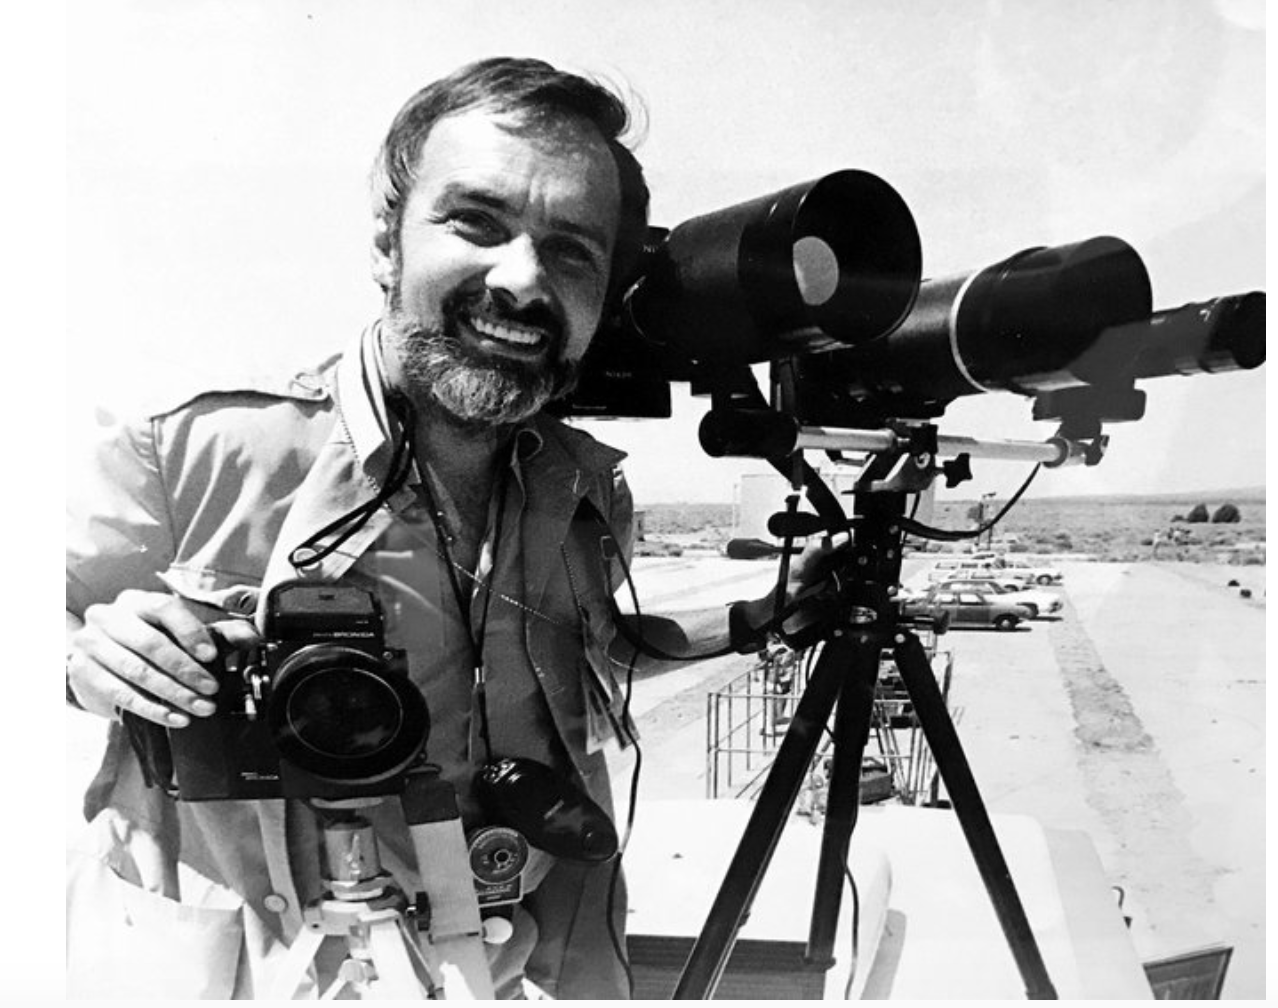 Ben Martin photographing the landing of the first space shuttle orbiter Columbia at Edwards Airforce Base, April 14, 1981.